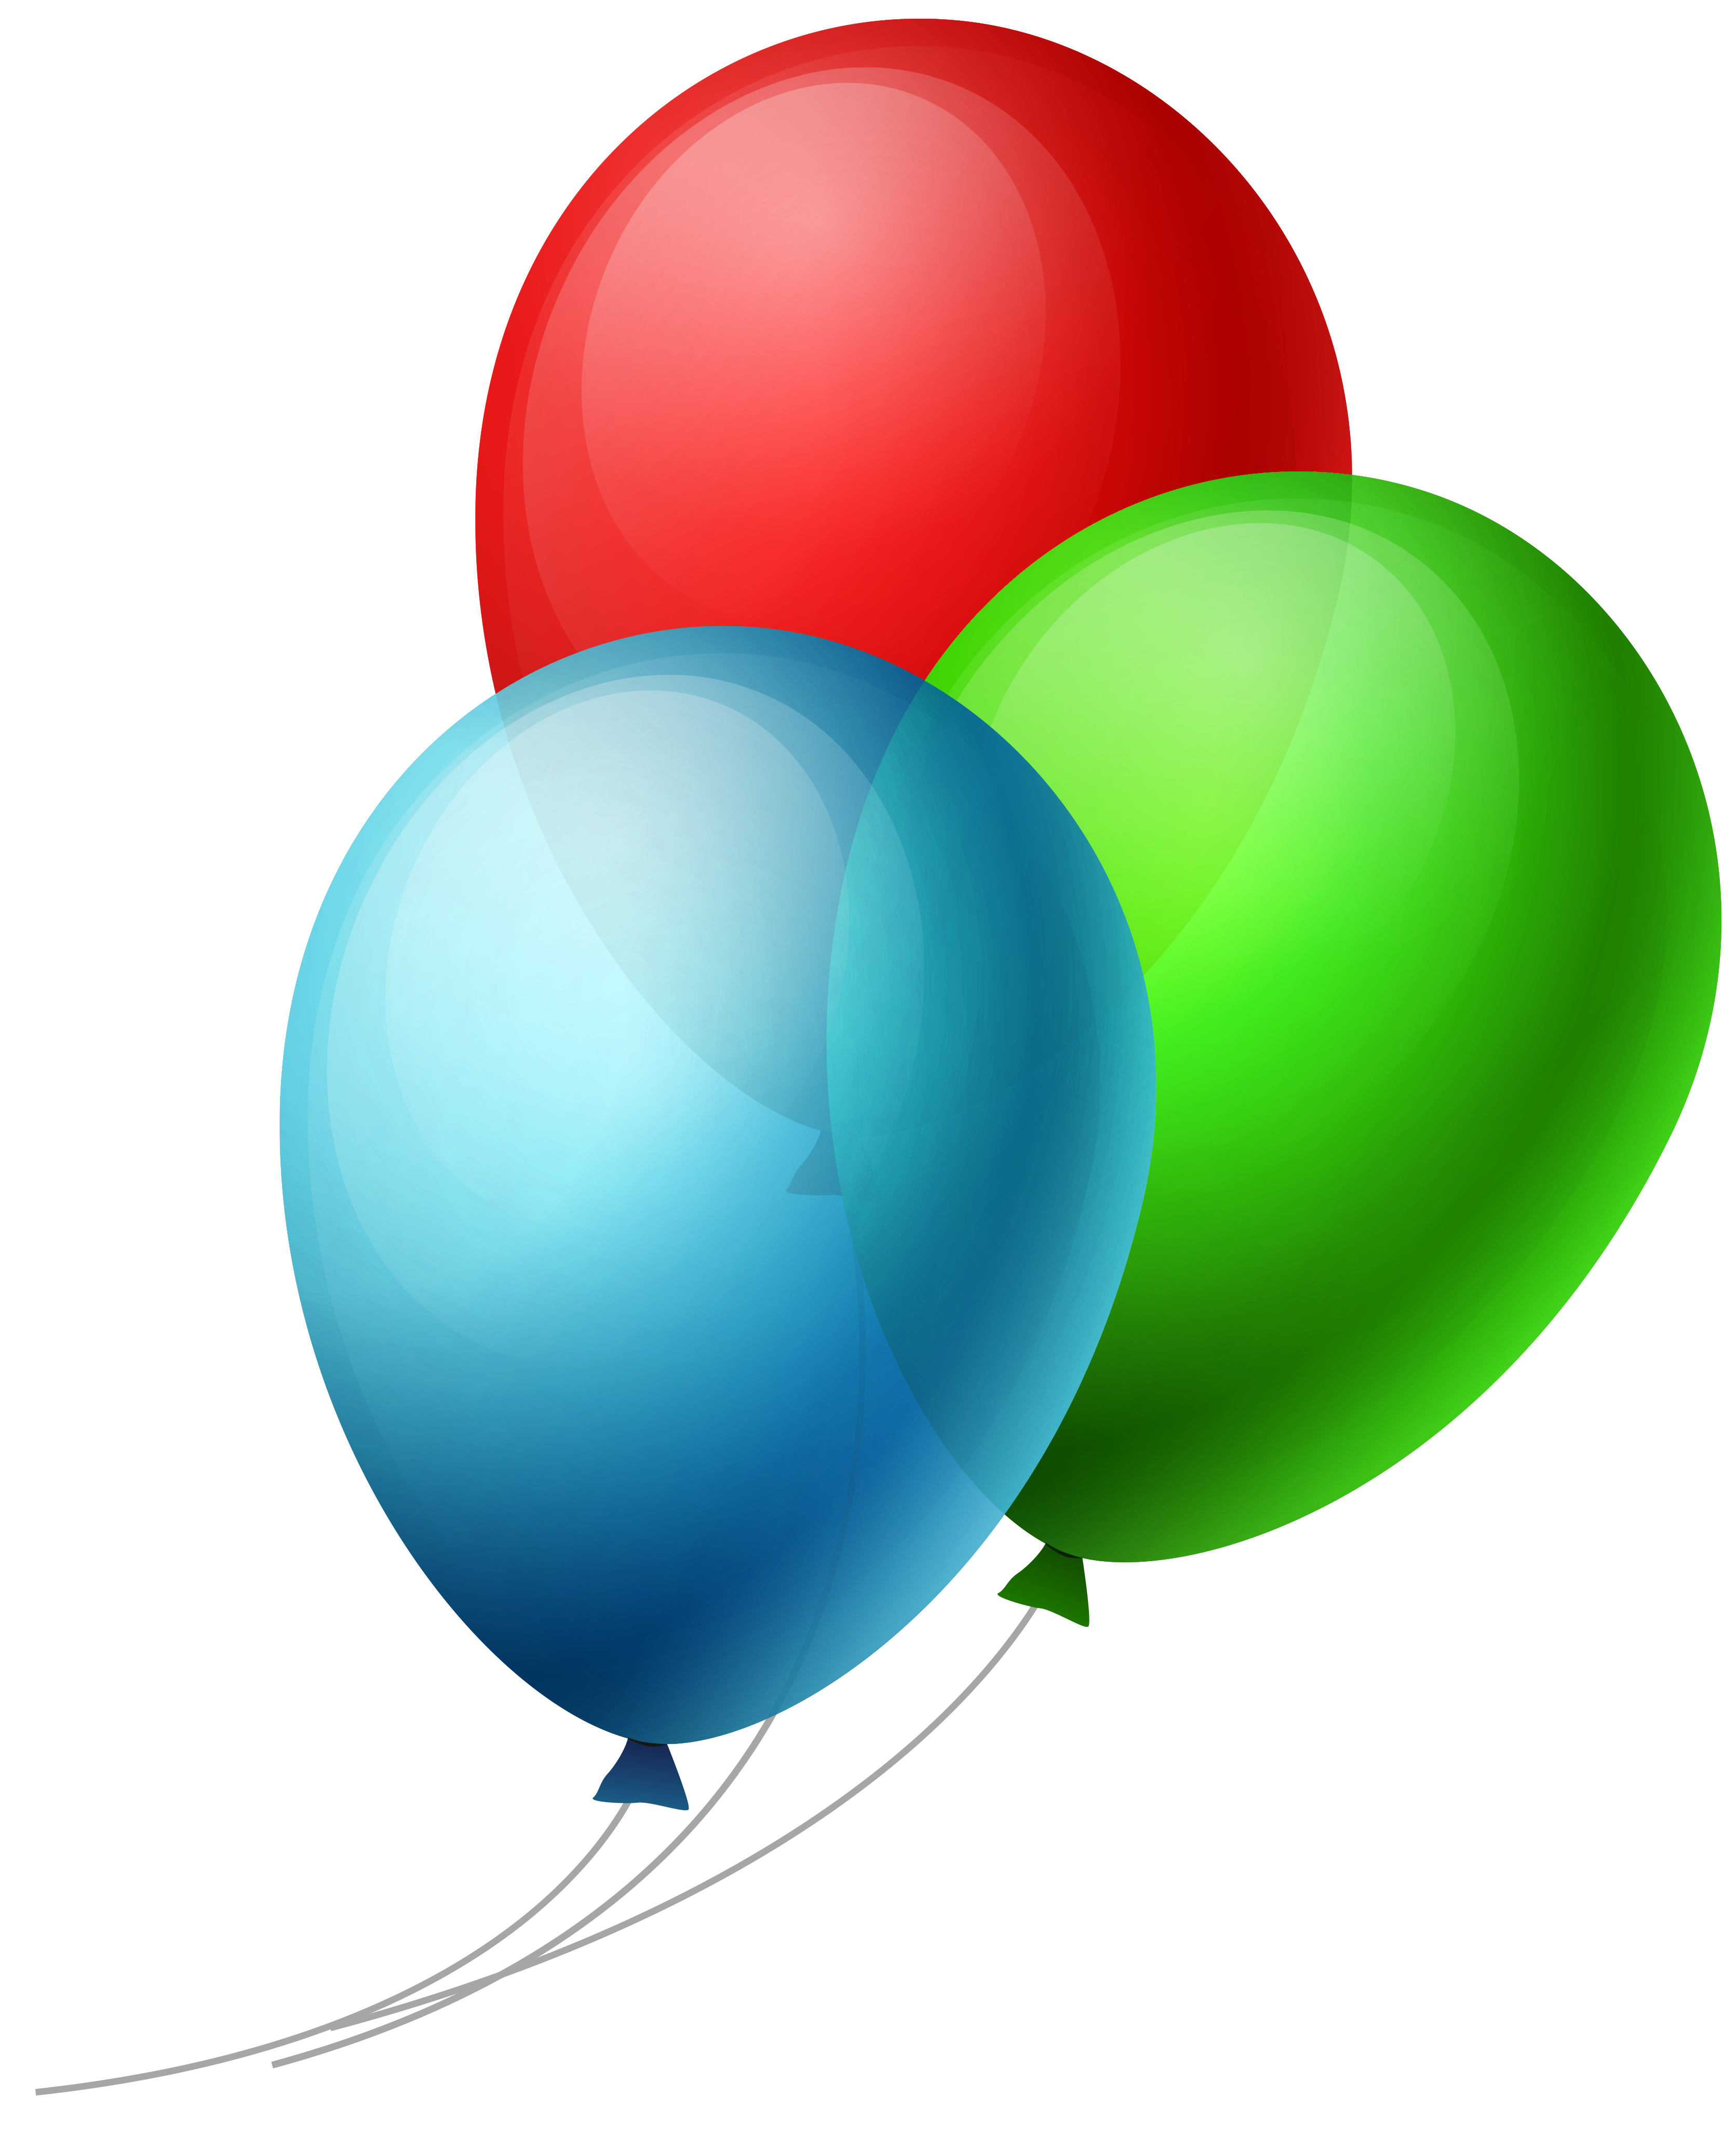 3 balloon png. Transparent three balloons clipart